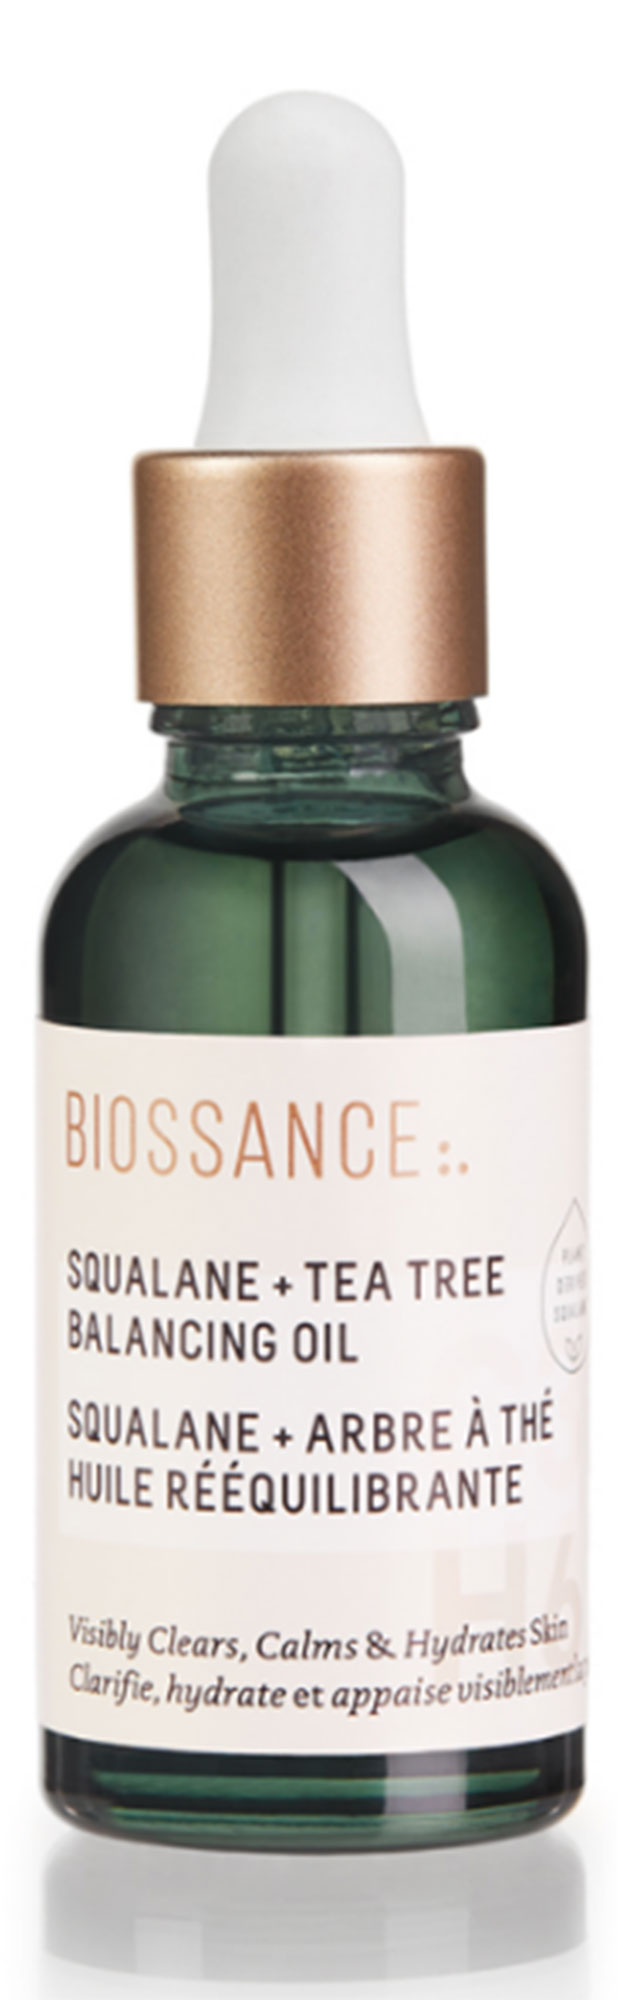 Best New Products biossance - While applying an oil to combination/oily skin may seem like an oxymoron, this tea tree-infused tonic is (a) lightweight and